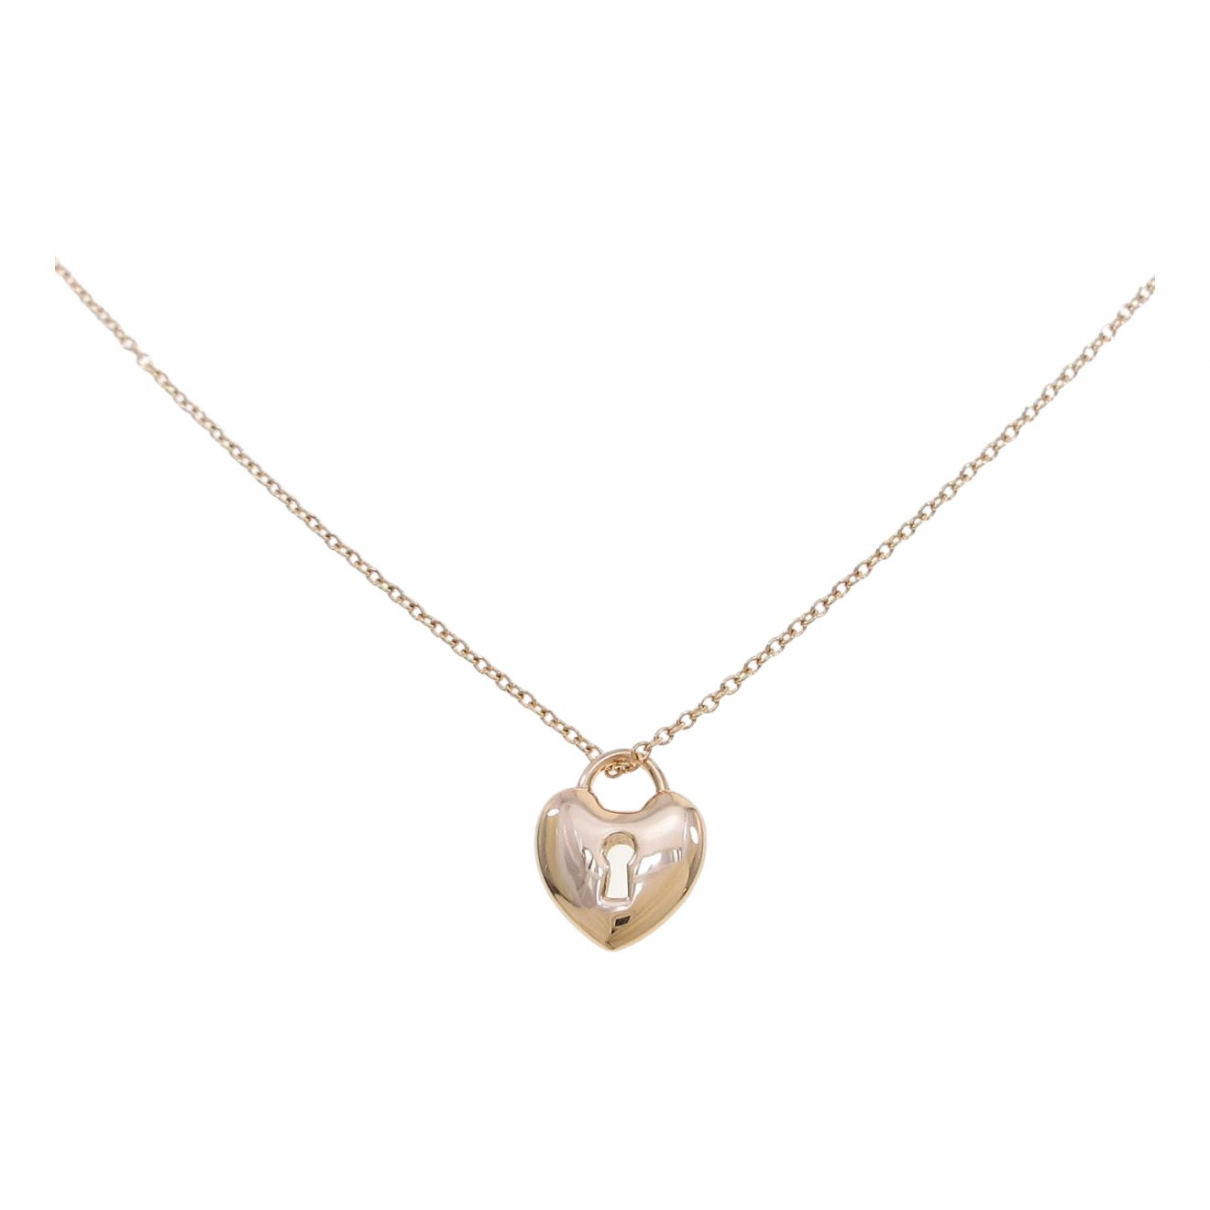 Tiffany & Co \N Silver Pink gold necklace for Women \N